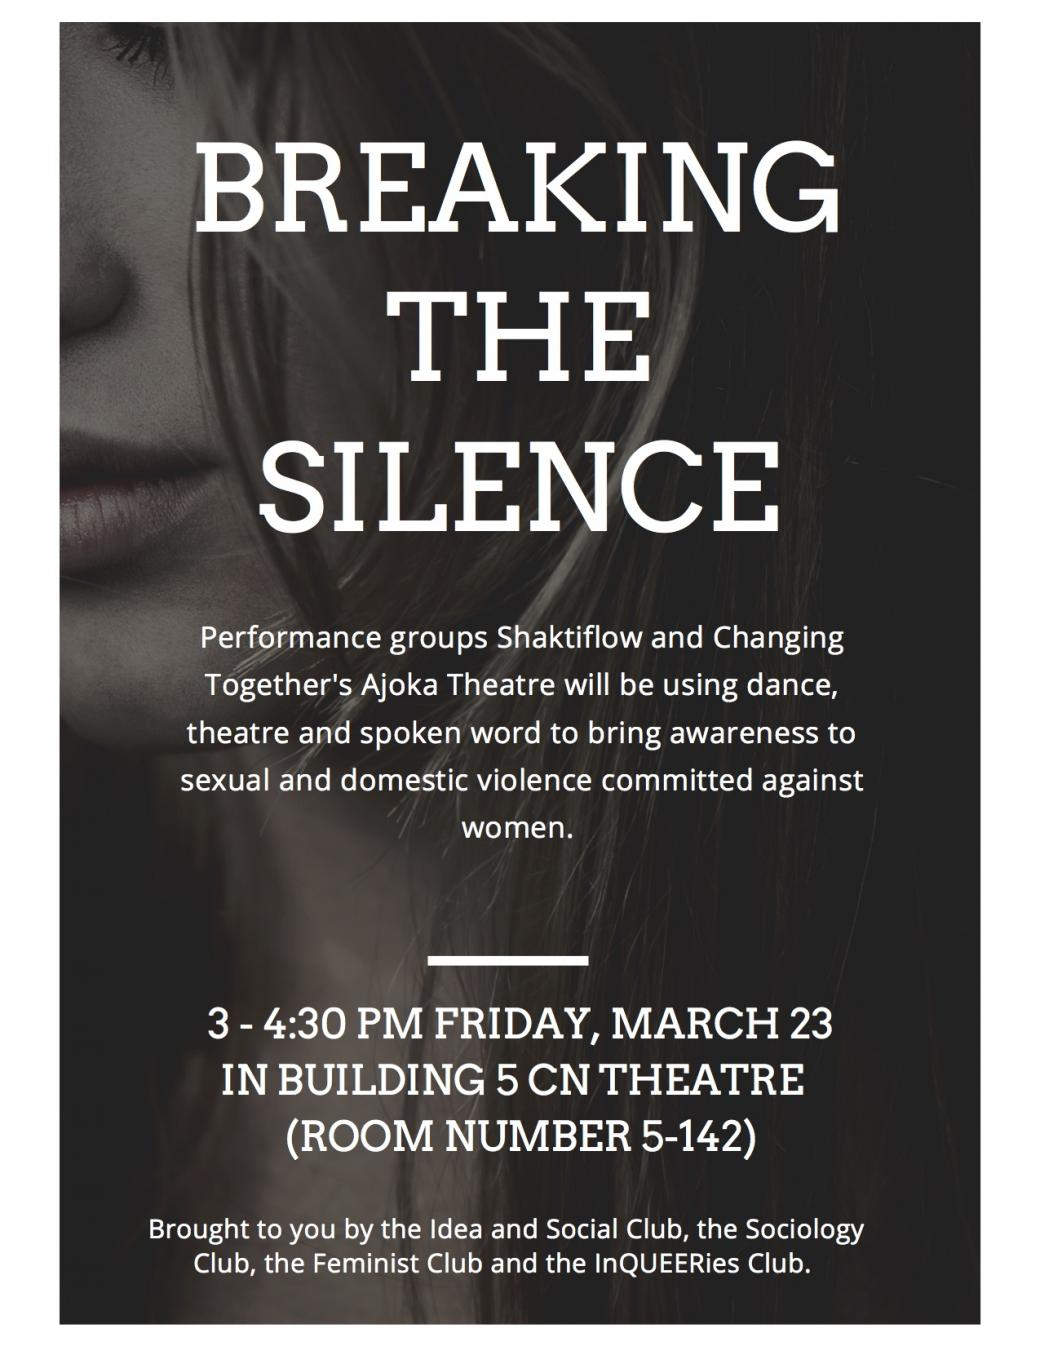 Breaking The Silence - An Aesthetic Response to Violence Against Women